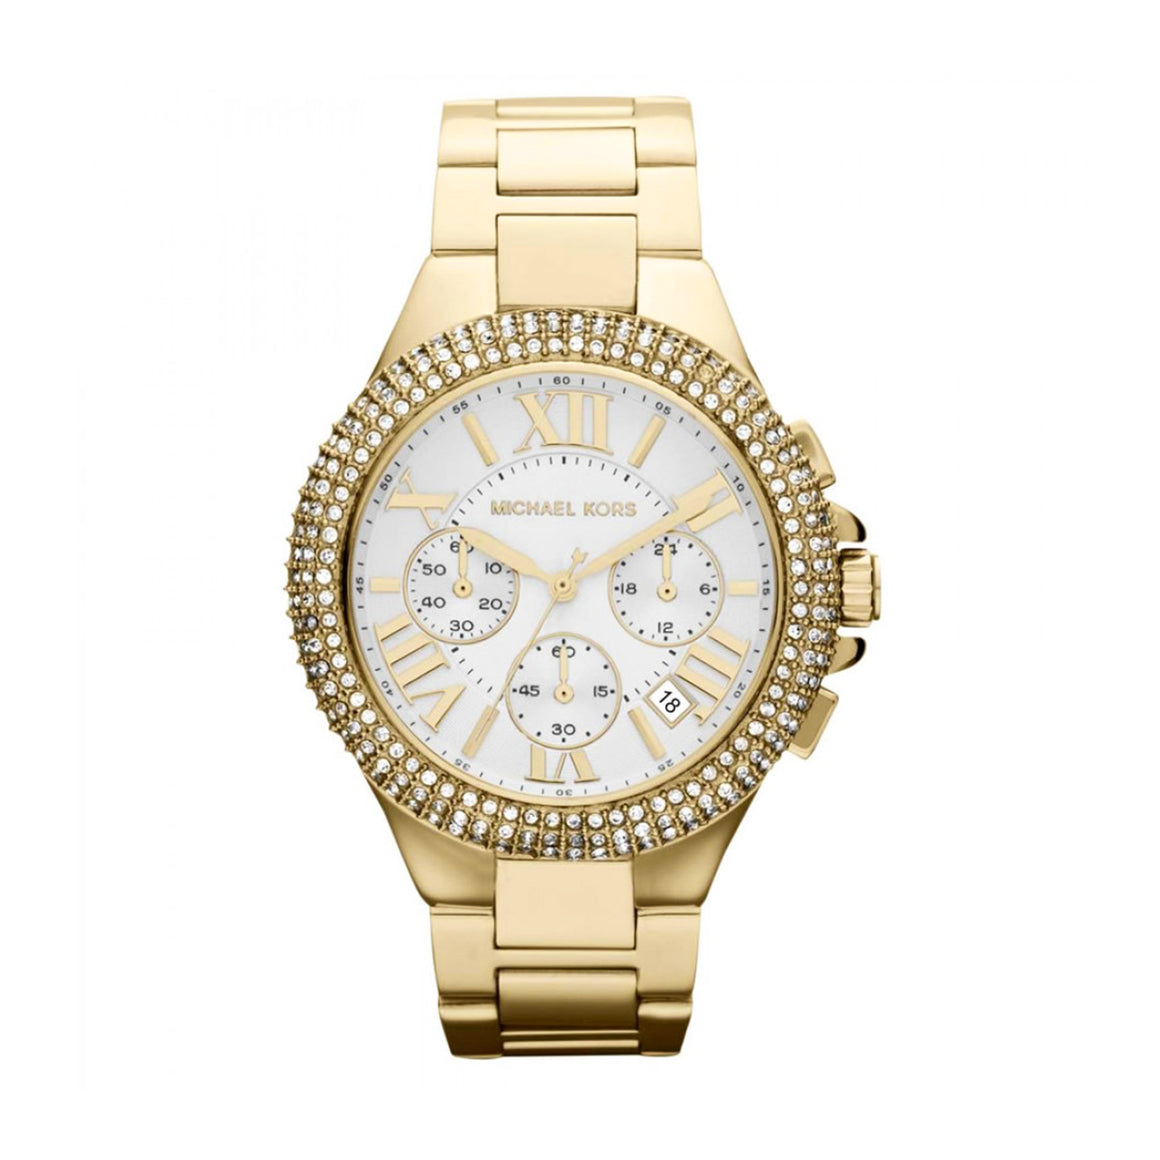 Michael Kors MK5756 Bradshaw Ladies' Chronograph Gold-tone Stainless Steel Quartz Watch